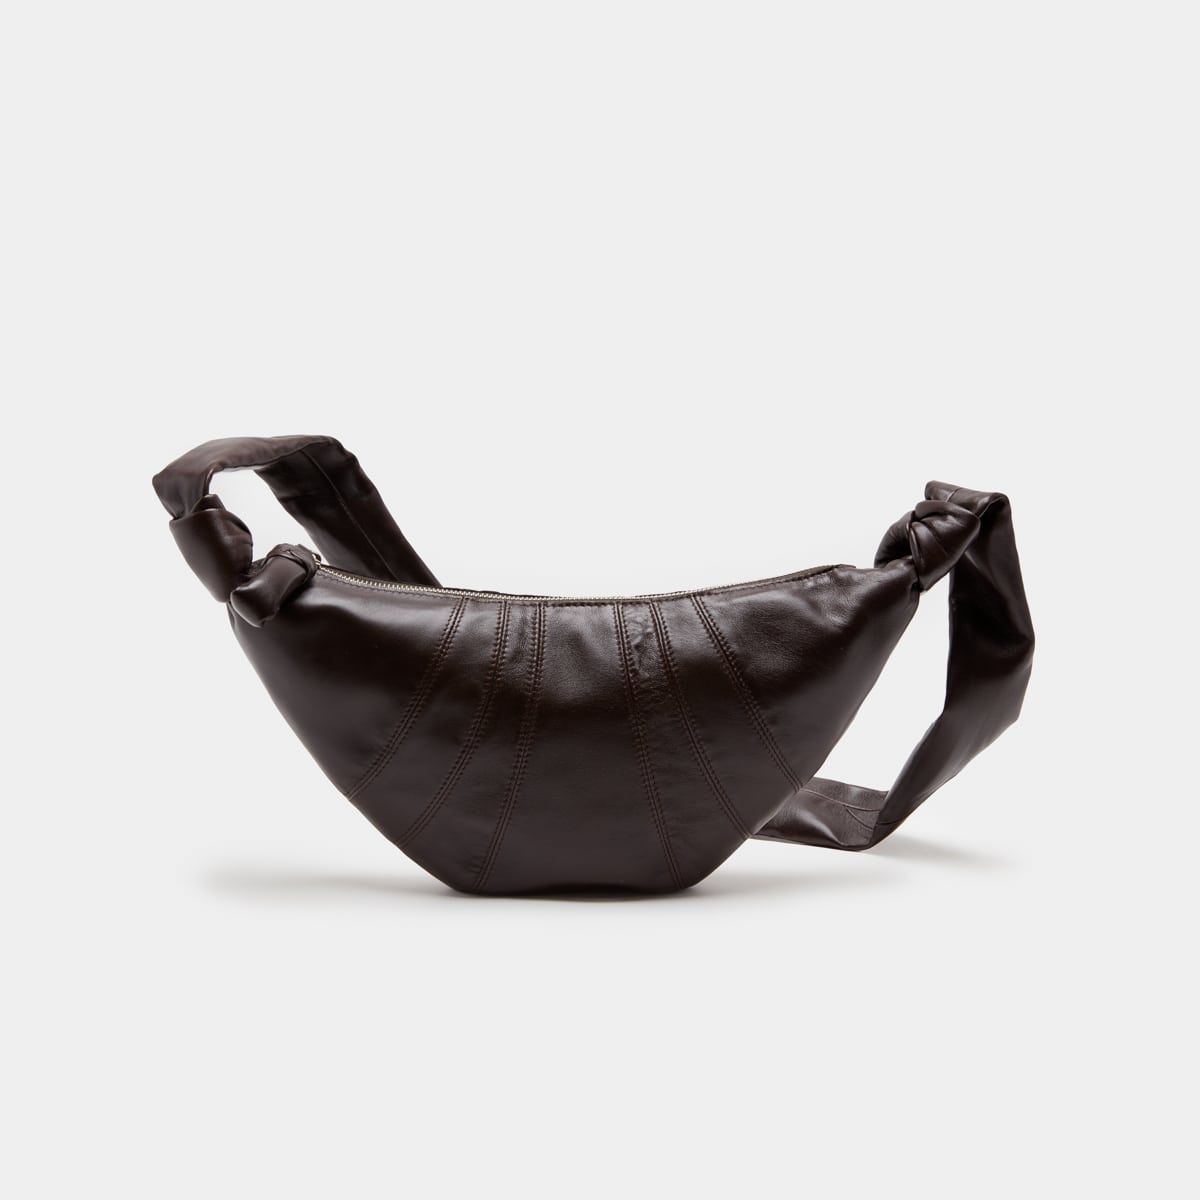 Lemaire Small Bum Bag Chocolate